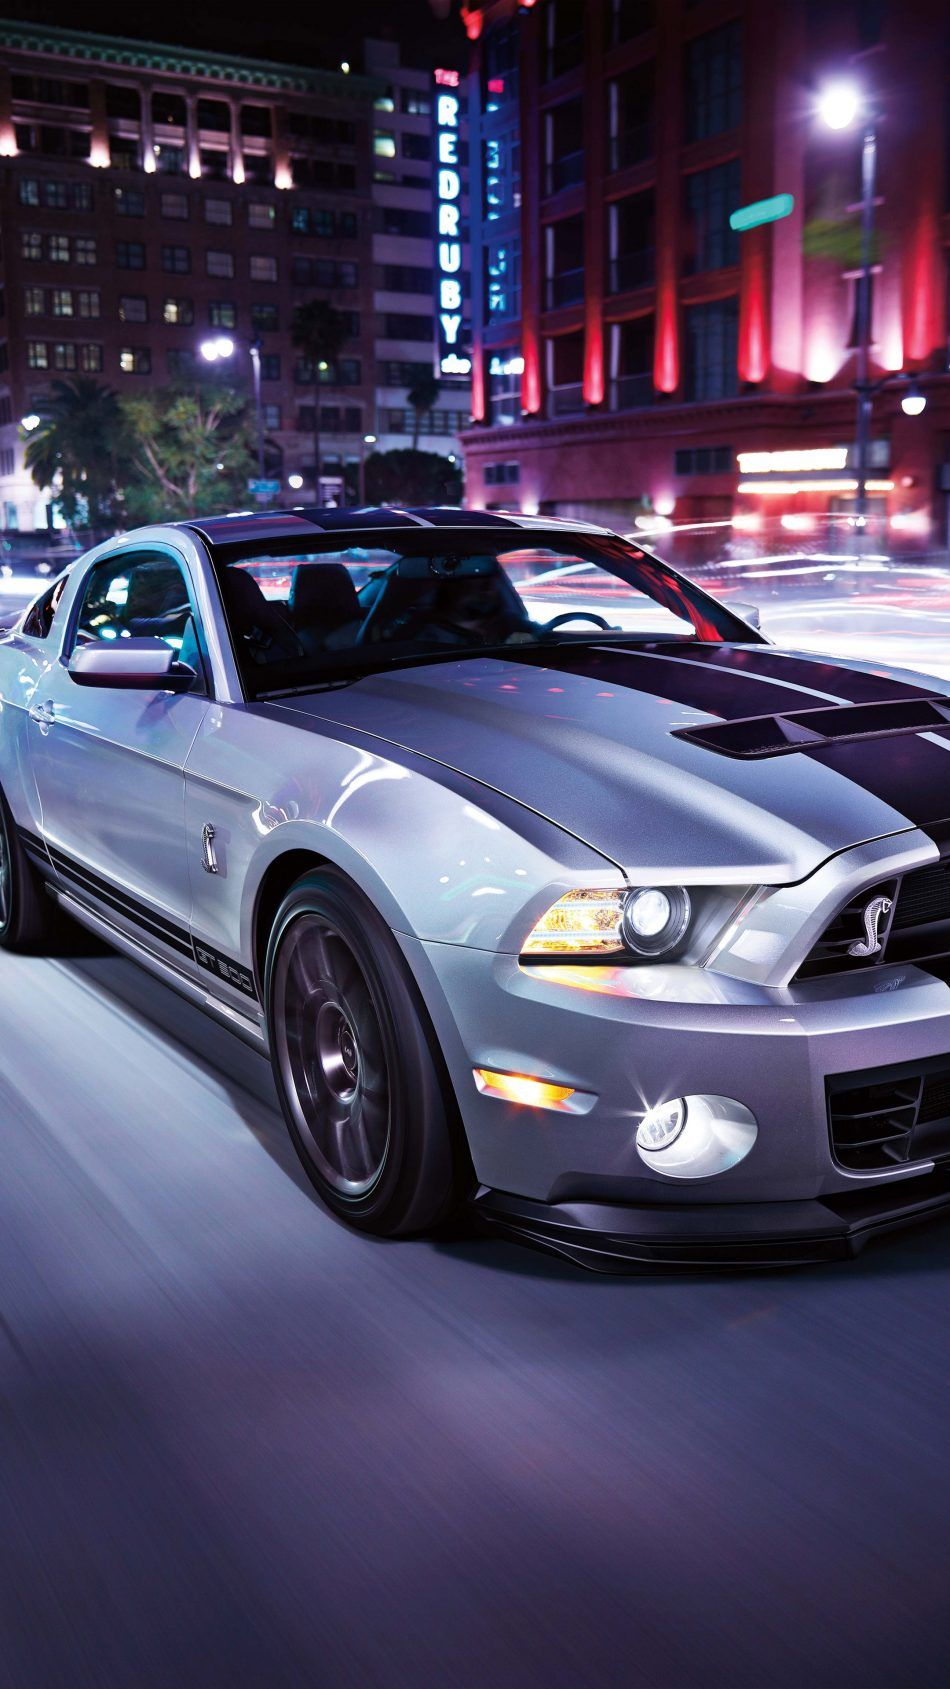 Ford Mustang Night Street Ford Mustang Wallpaper Sports Car